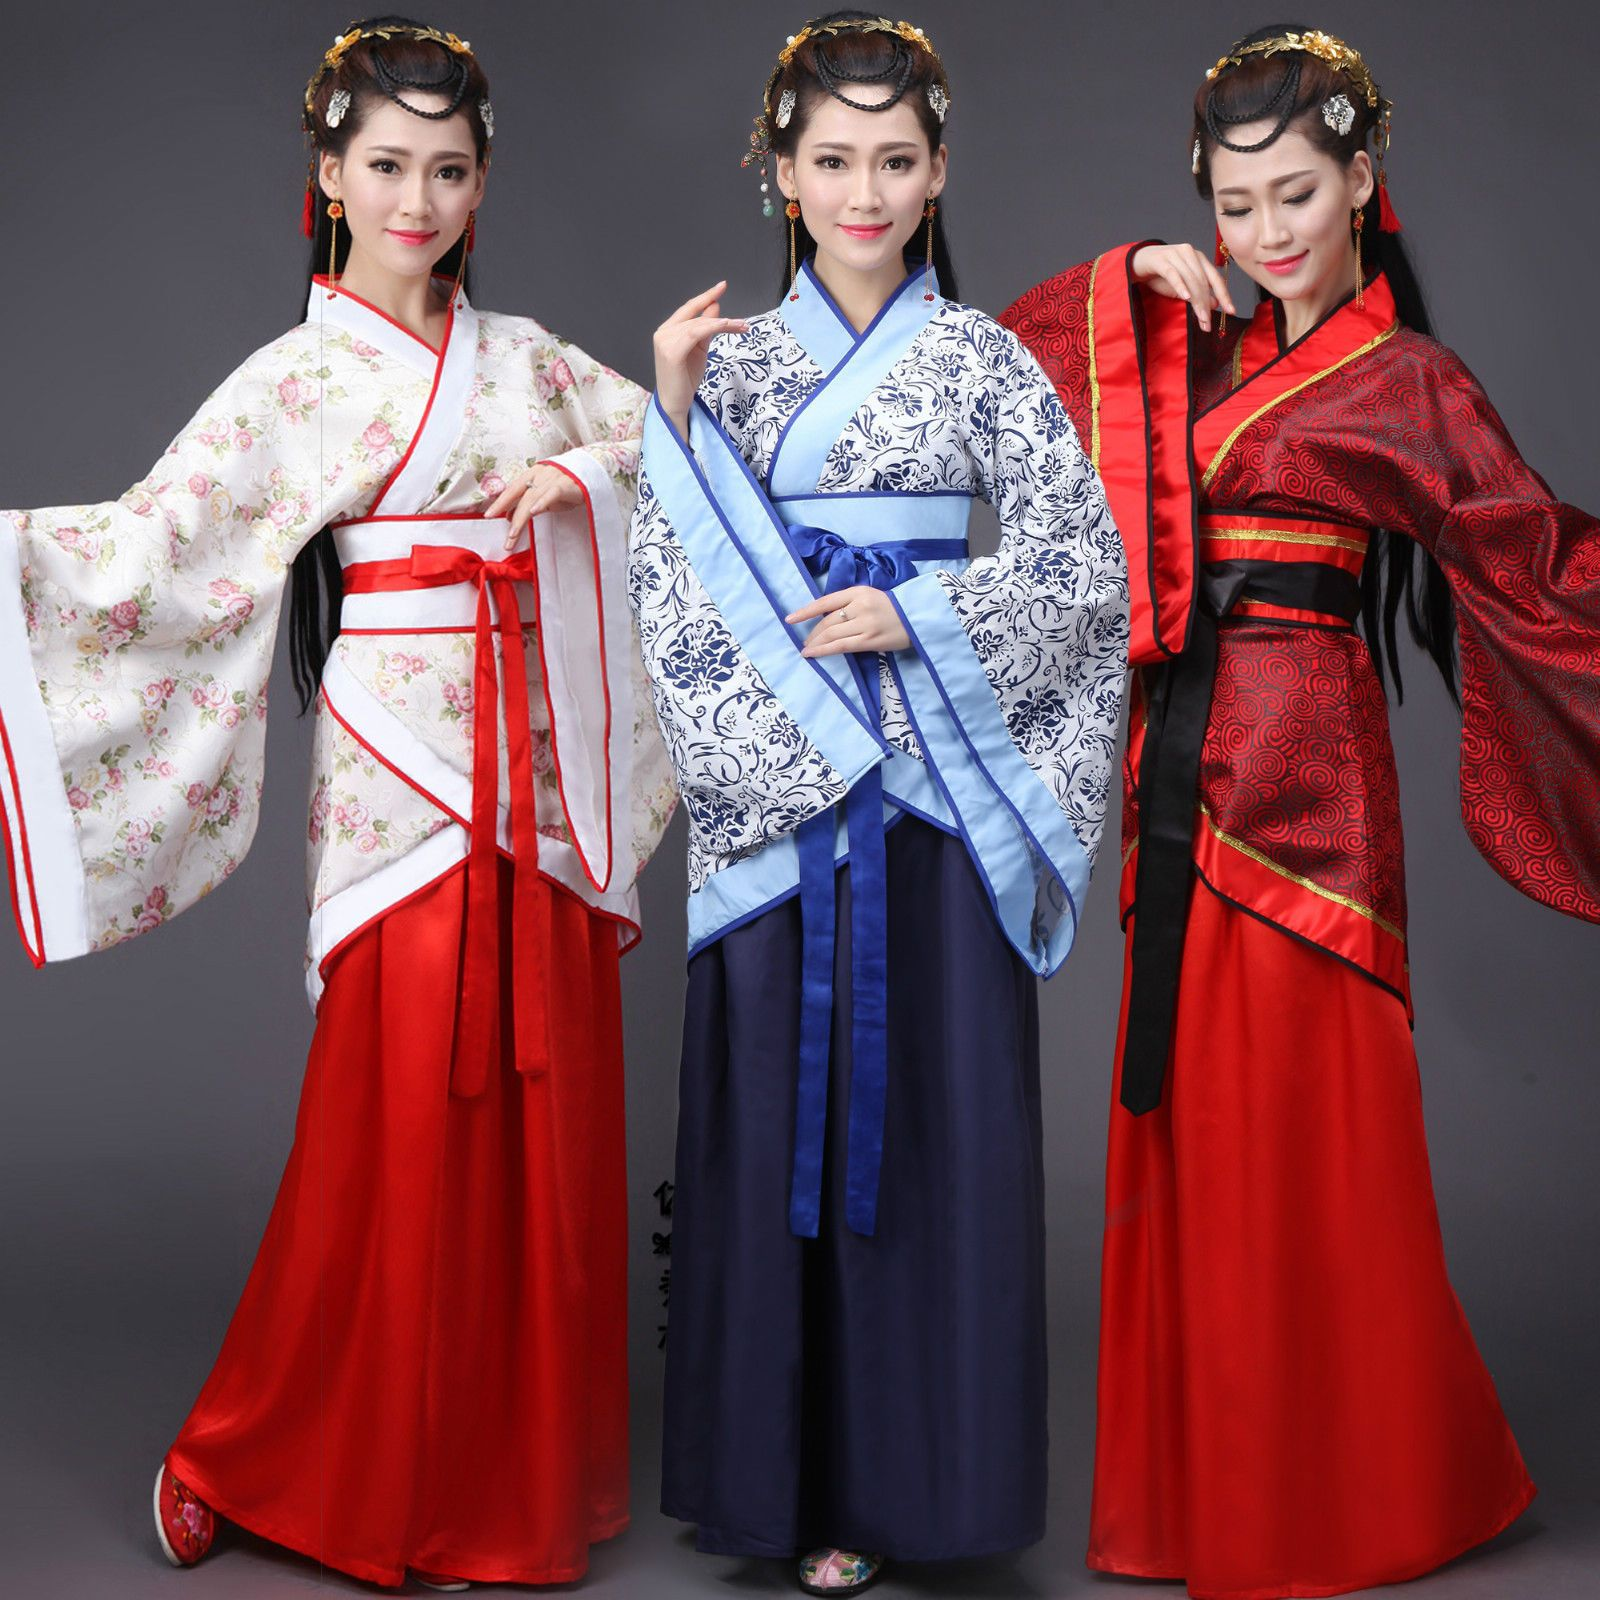 Adults Children Kids Gown Robe Chinese Ancient Mandarin Collar Stage Costume New